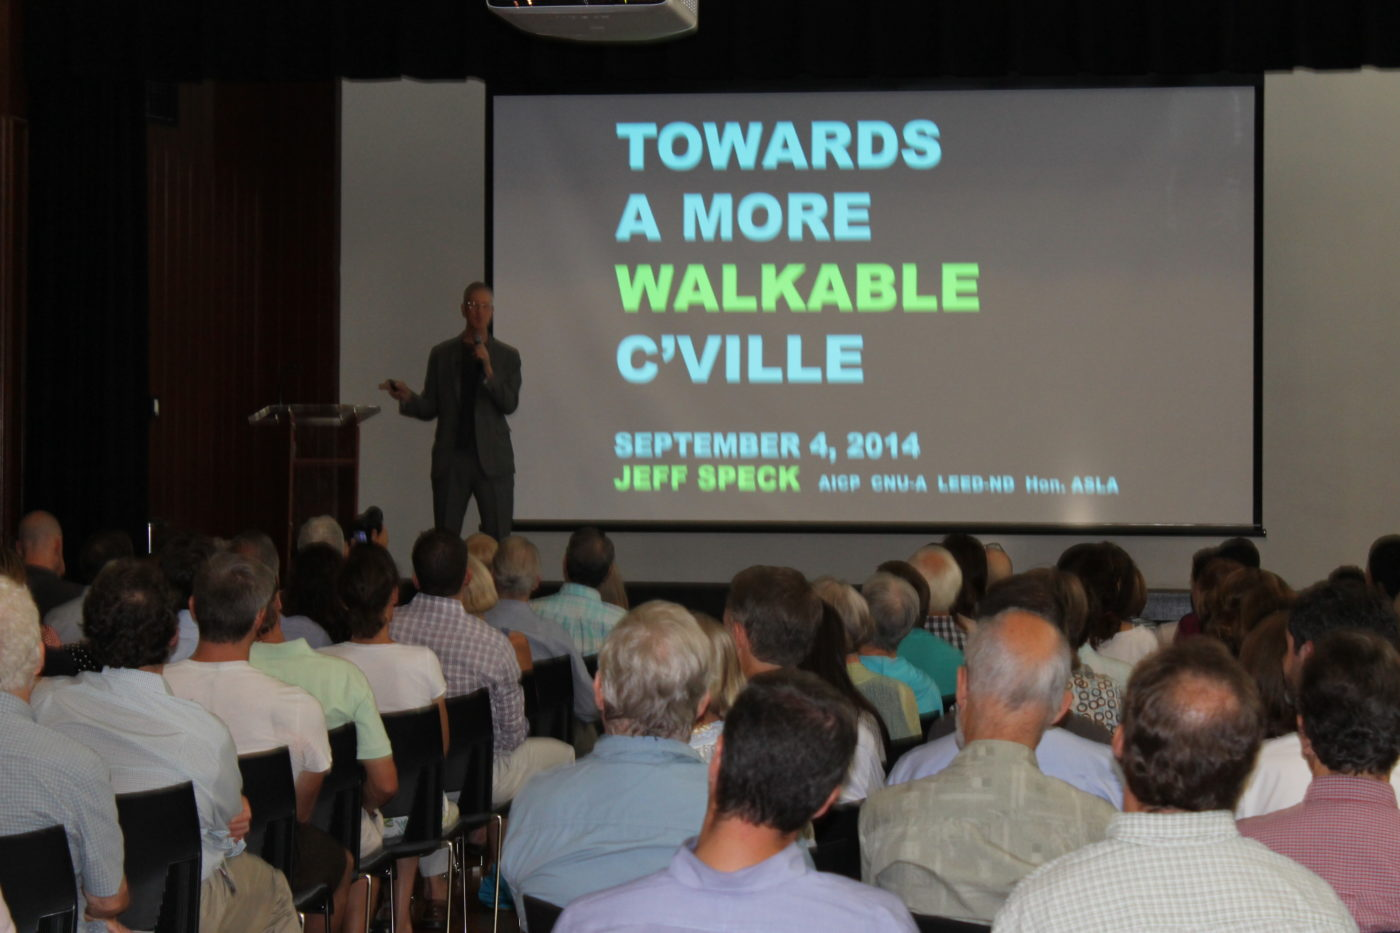 Urban planner offers tips to make Charlottesville more